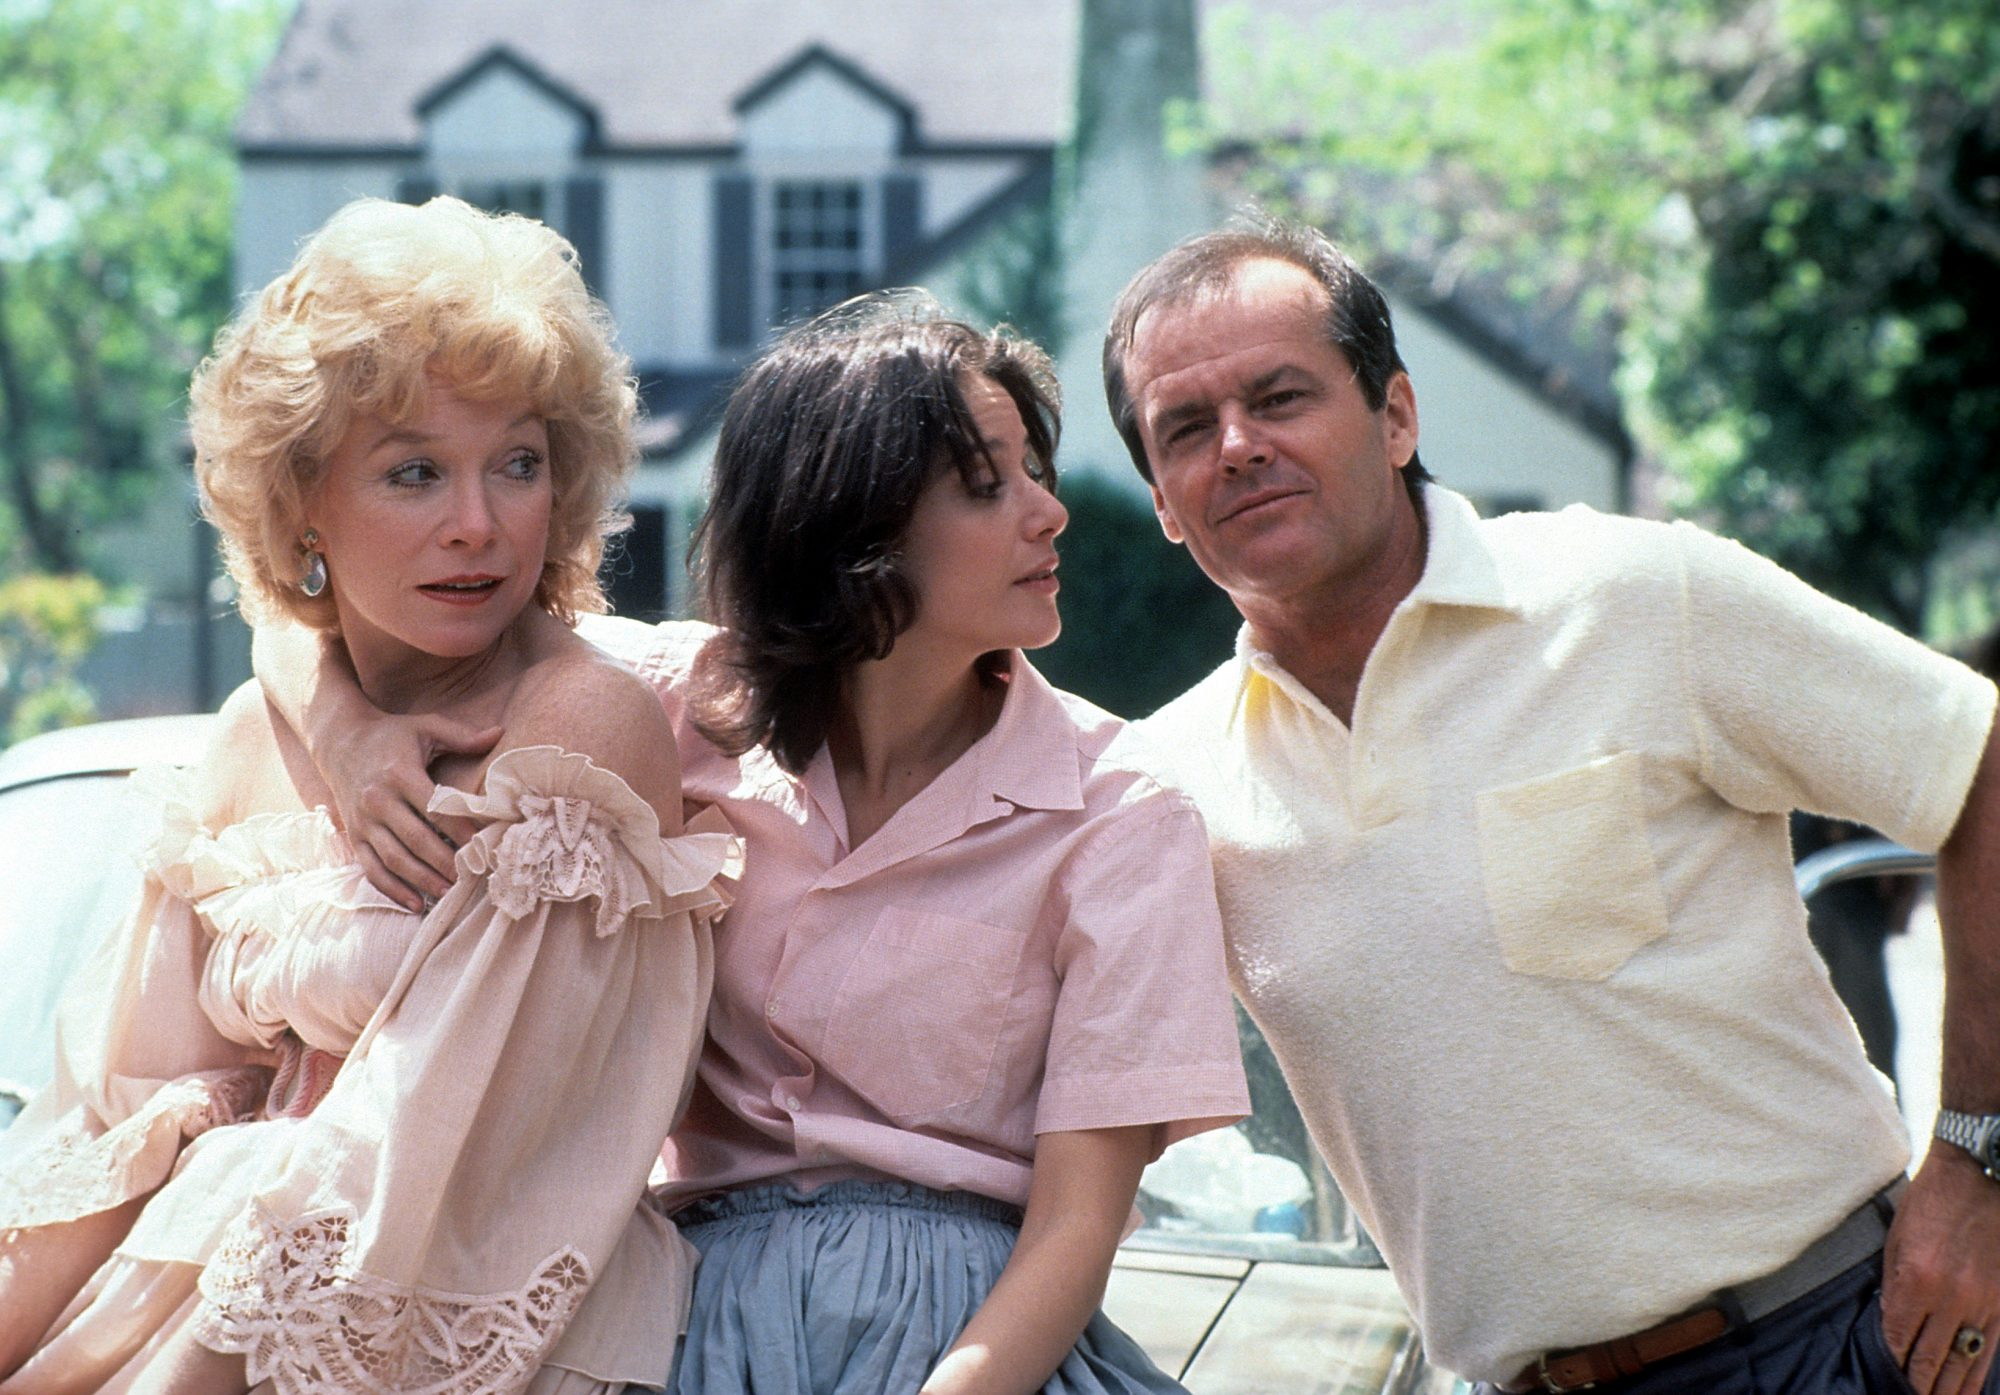 Shirley MacLaine, Debra Winger and Jack Nicholson in Terms of Endearment